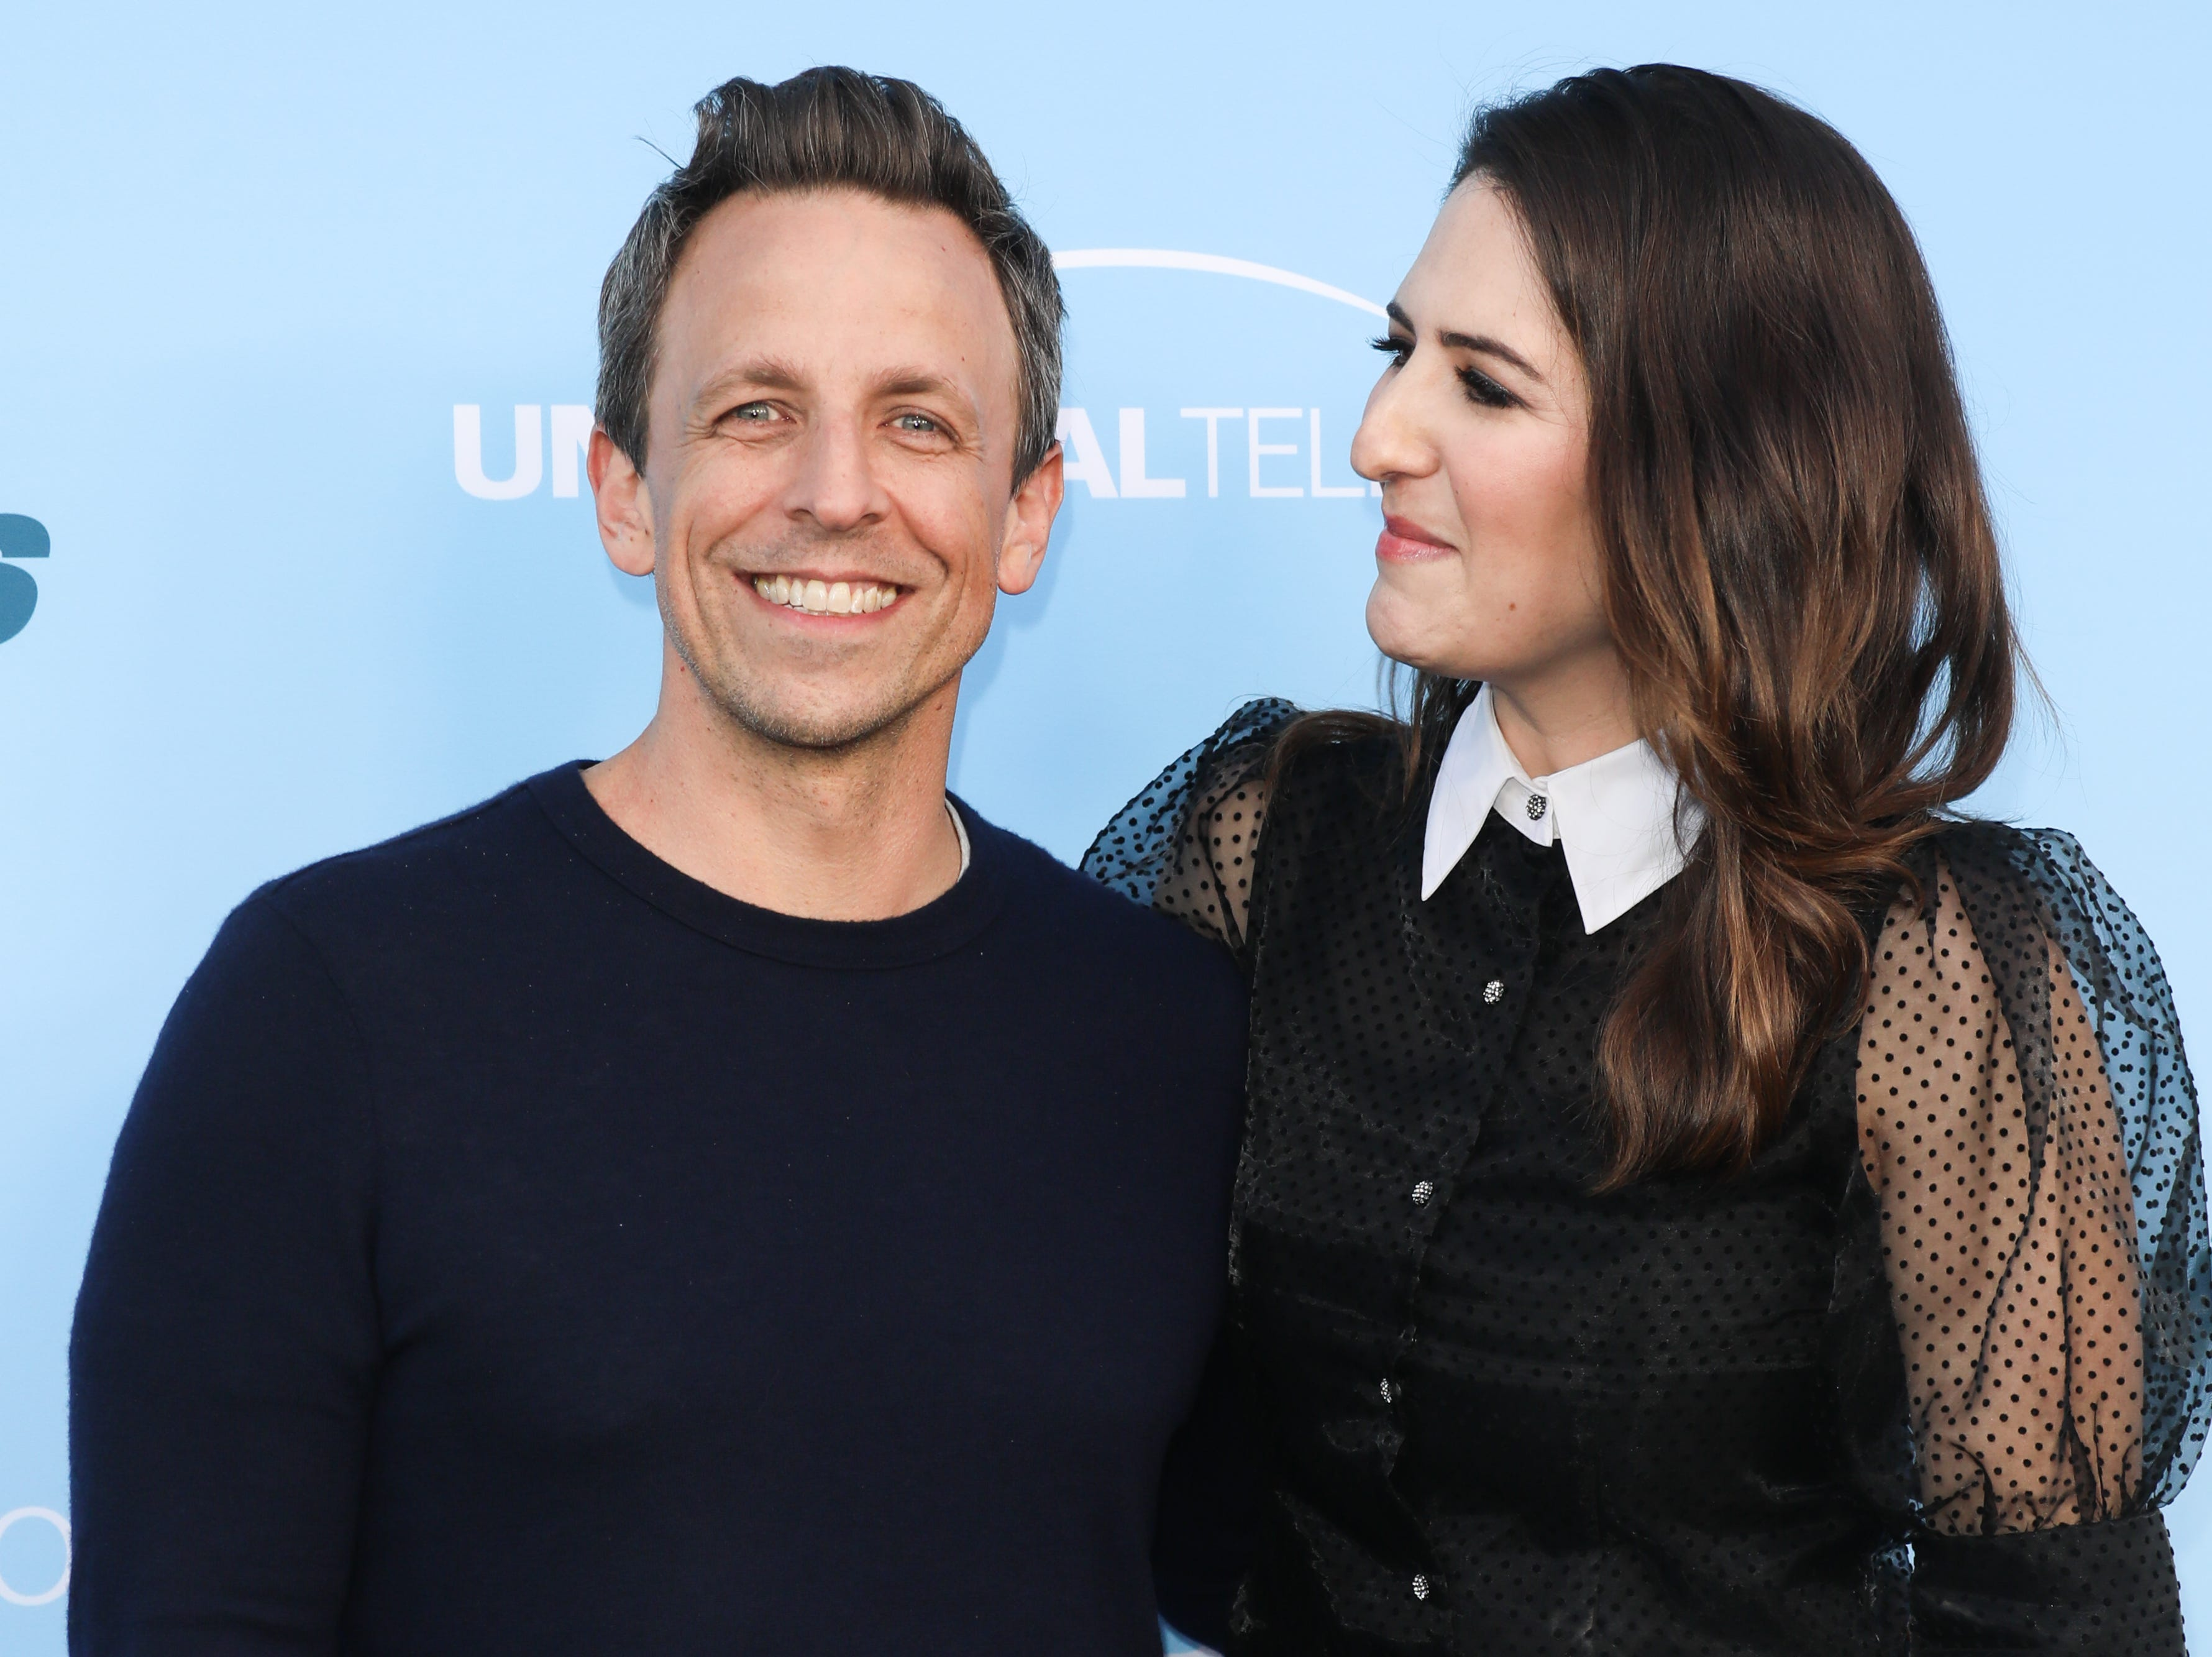 """TV Personality Seth Meyers and Actress D'Arcy Carden attend the FYC event for NBC's """"Late Night With Seth Meyers"""" at the Saban Media Center on May 17, 2019 in North Hollywood, Calif."""